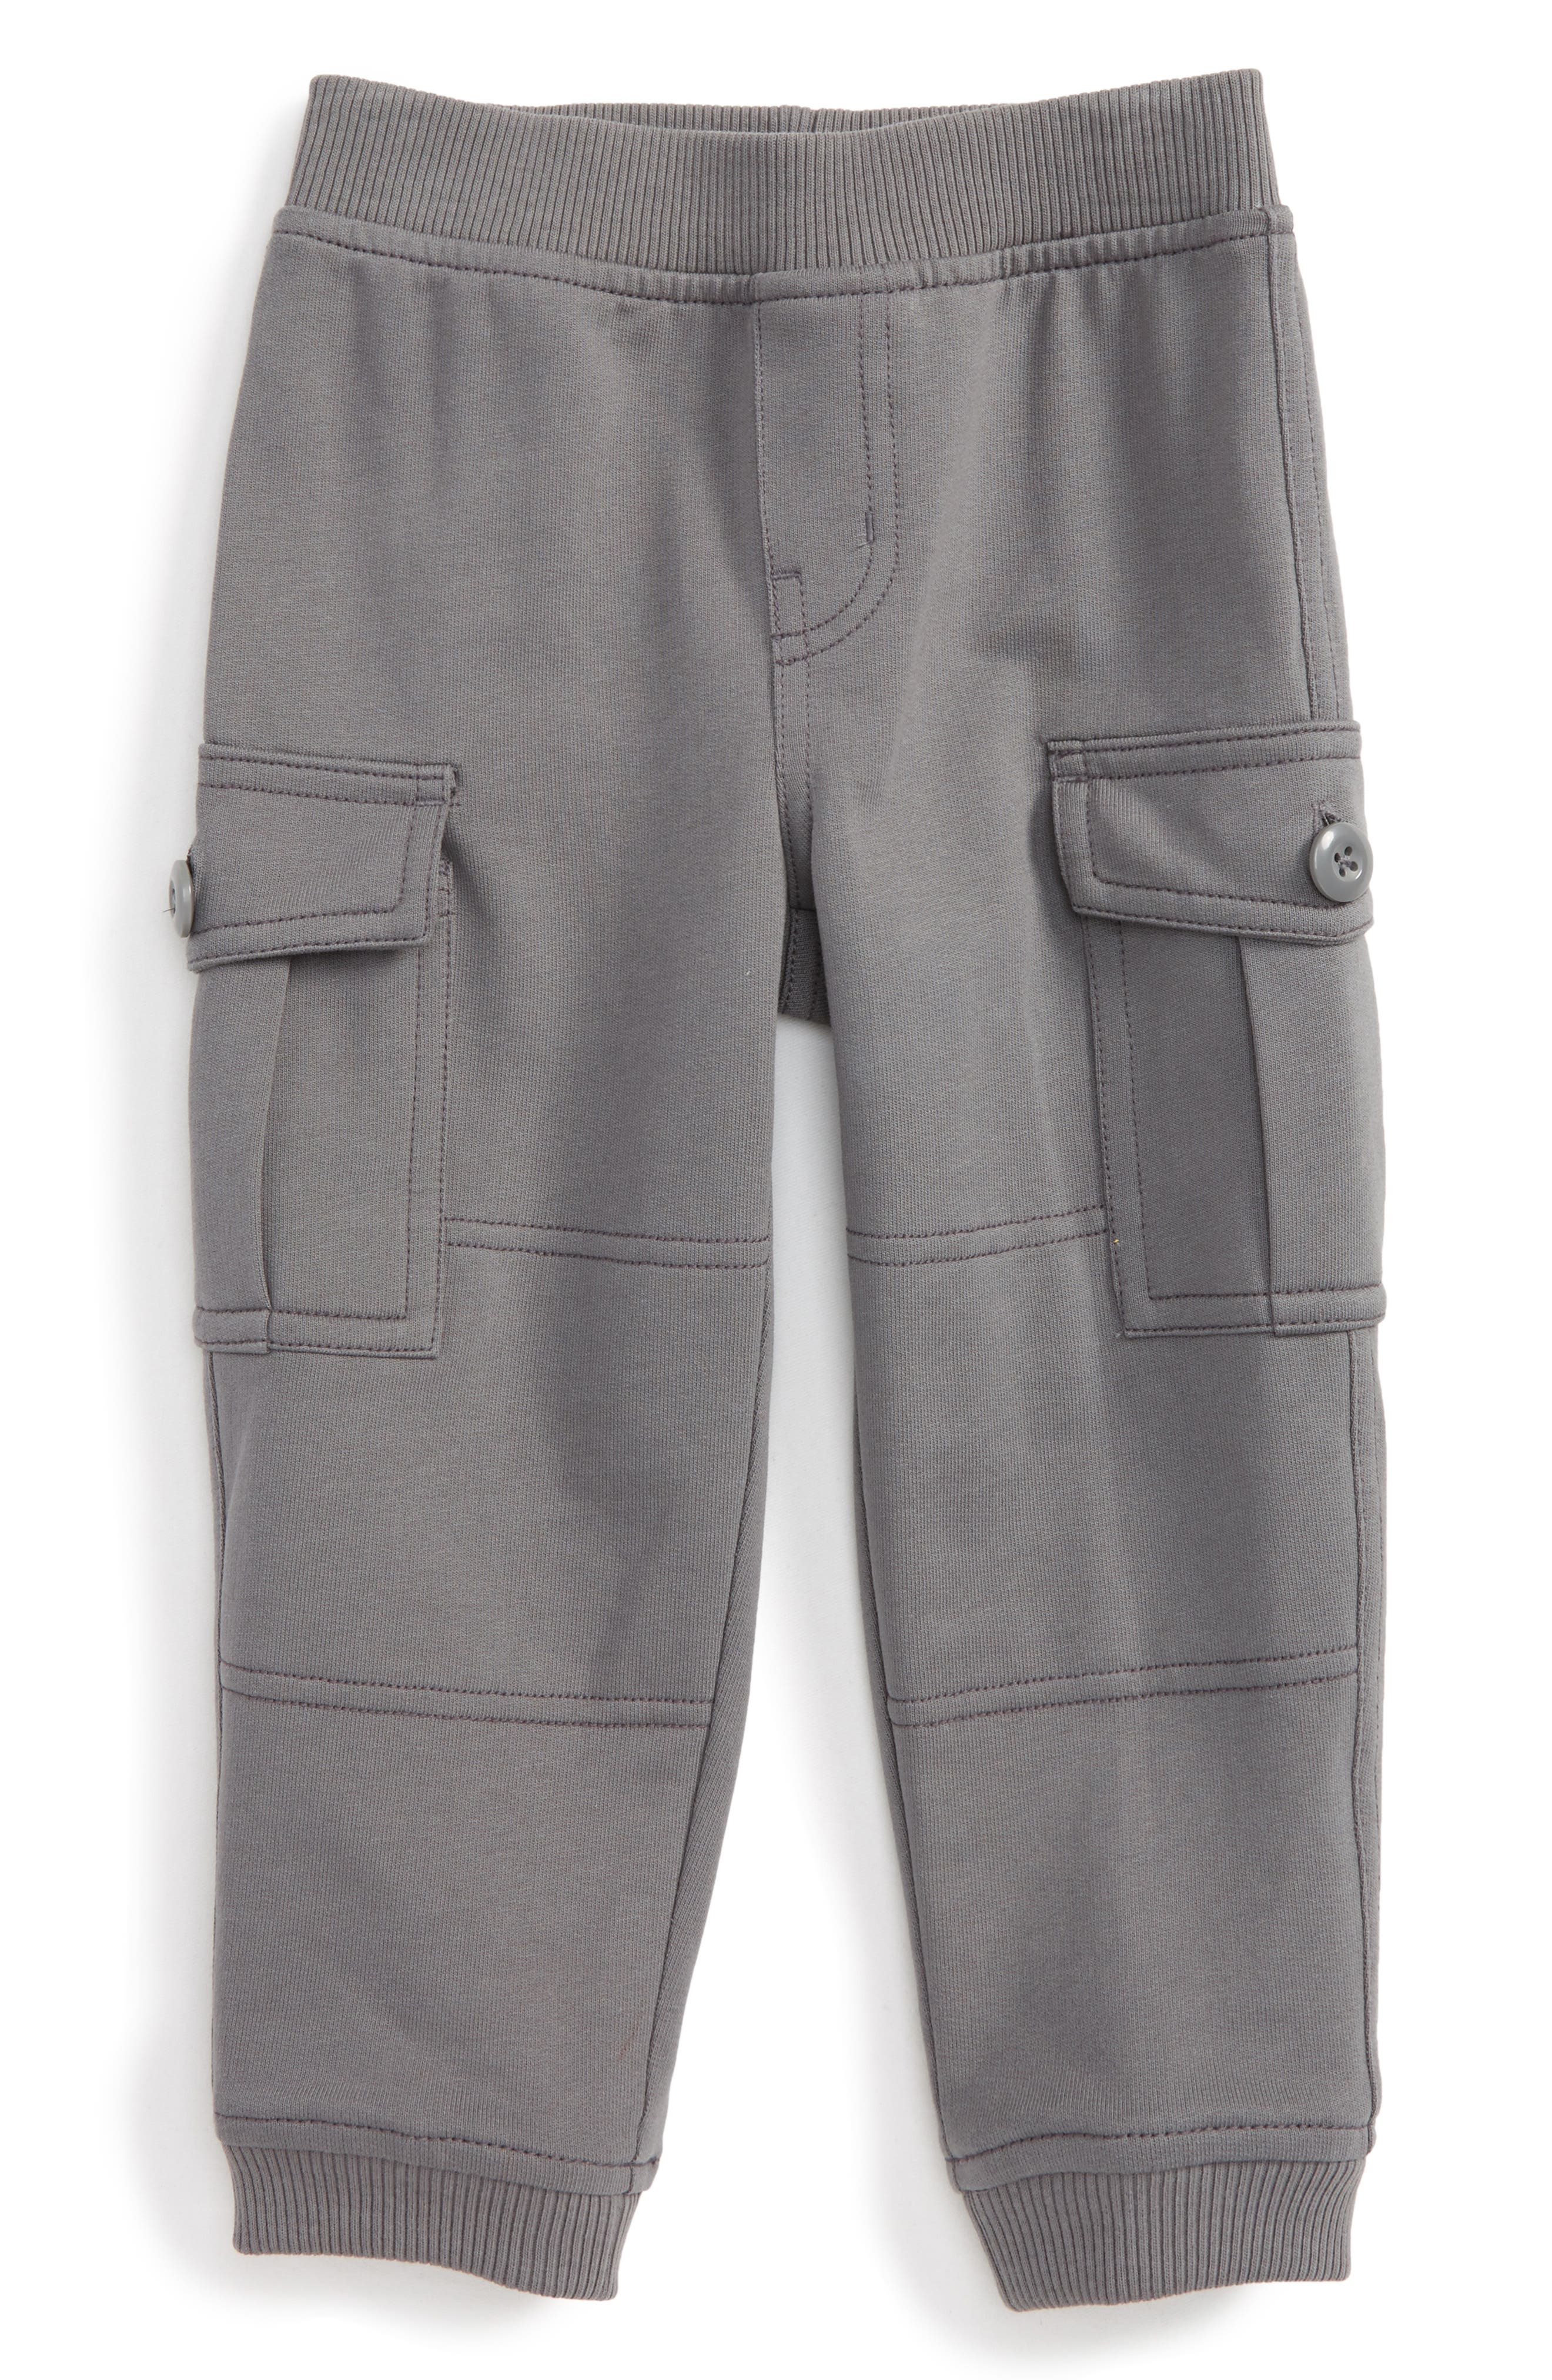 Ready to Roll Cargo Pants,                         Main,                         color, 020